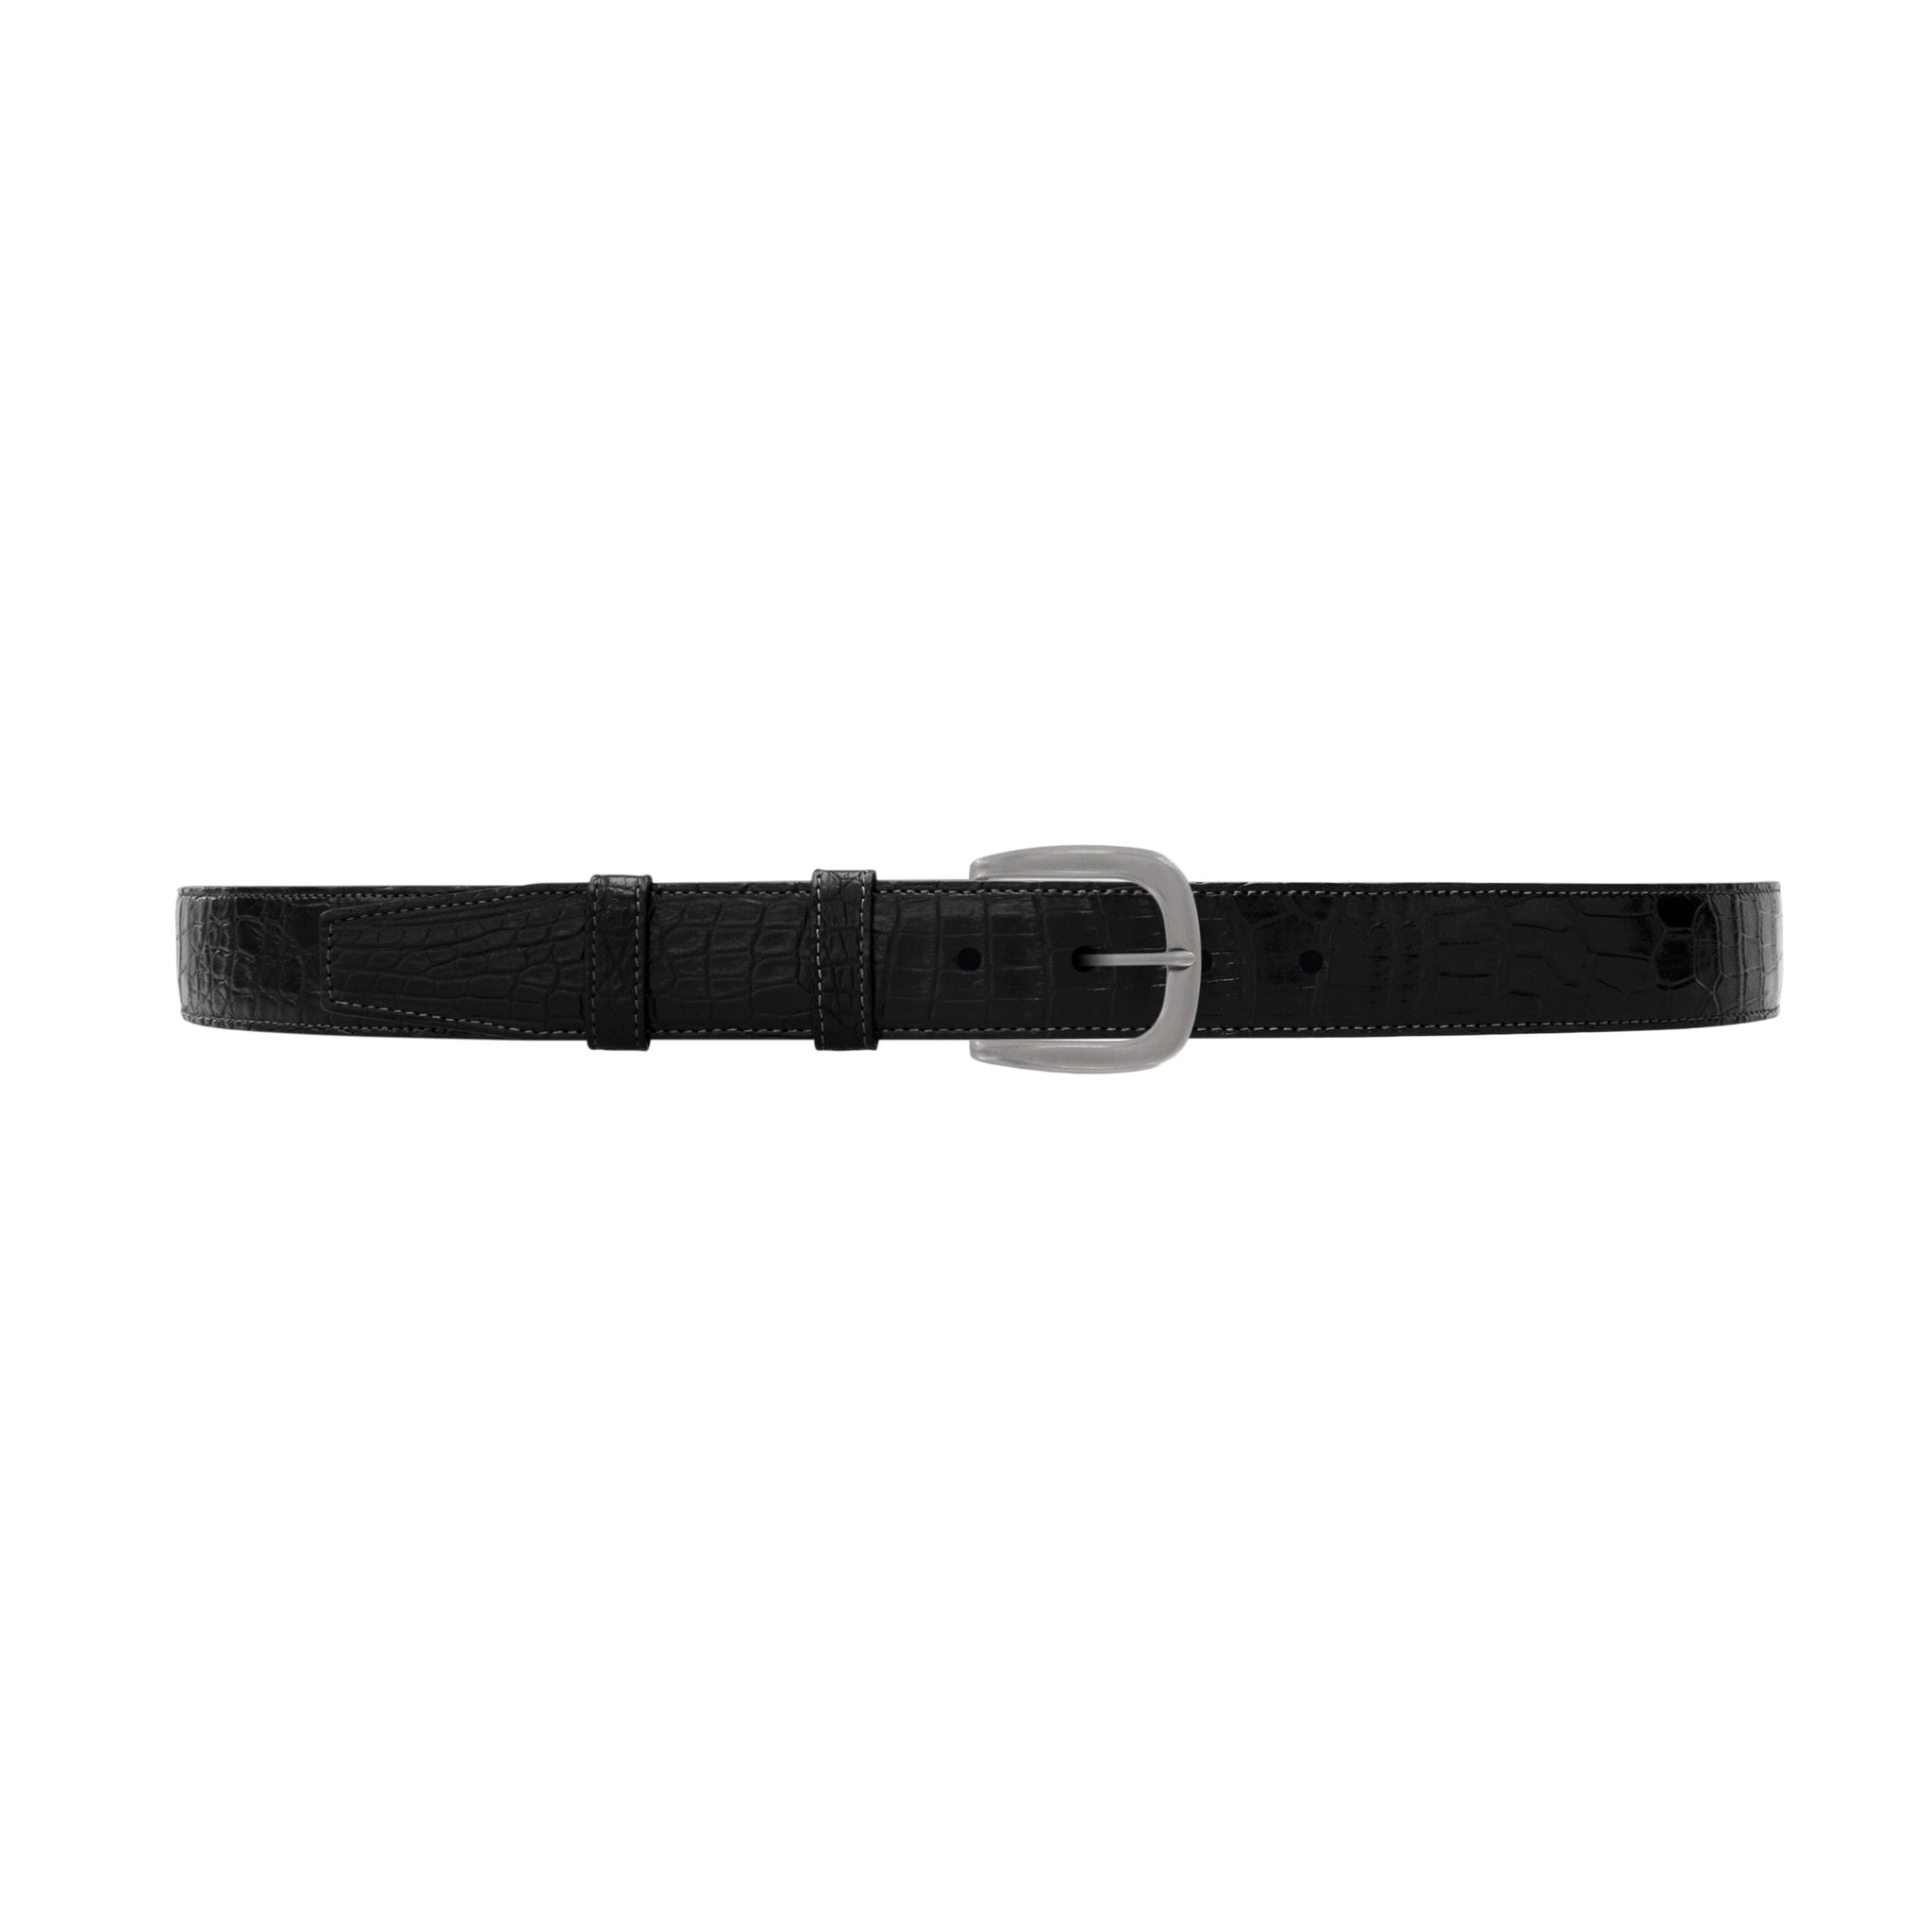 "1 1/4"" Raven Classic Belt with Oxford Cocktail Buckle in Matt Nickel"